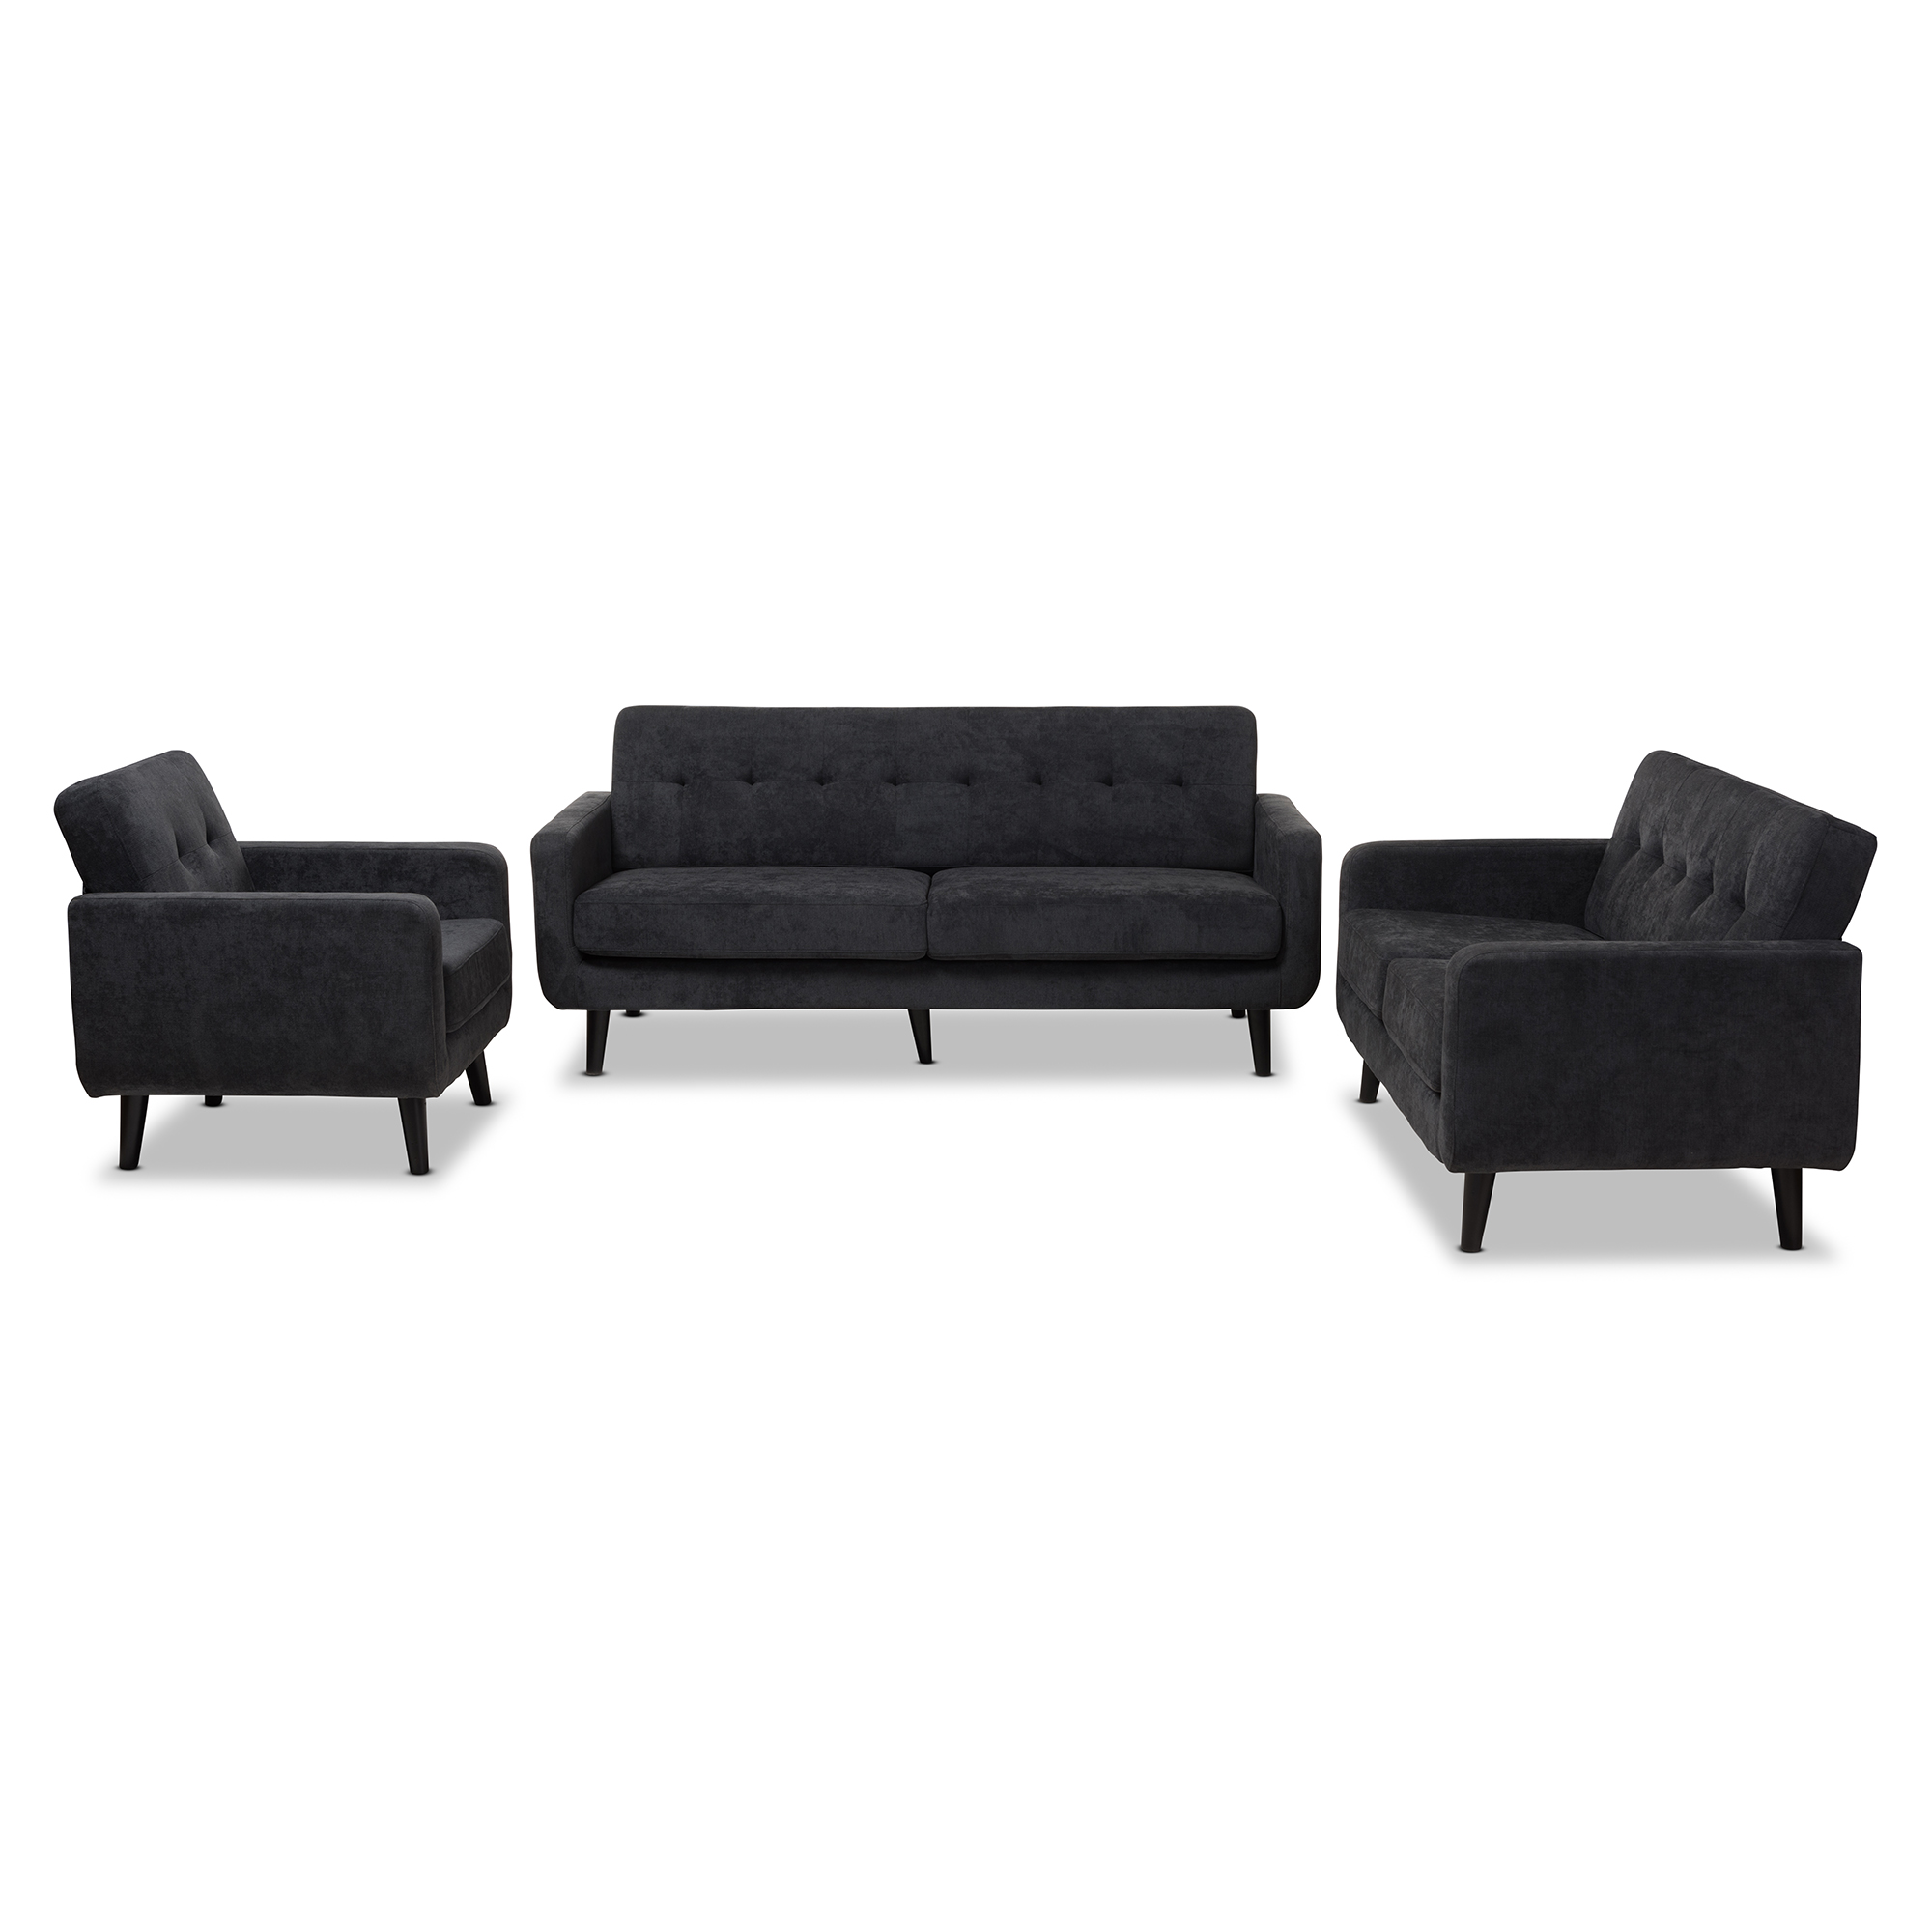 cheap 3 piece living room set modern italian furniture sofa sets affordable baxton studio carina mid century dark grey fabric upholstered